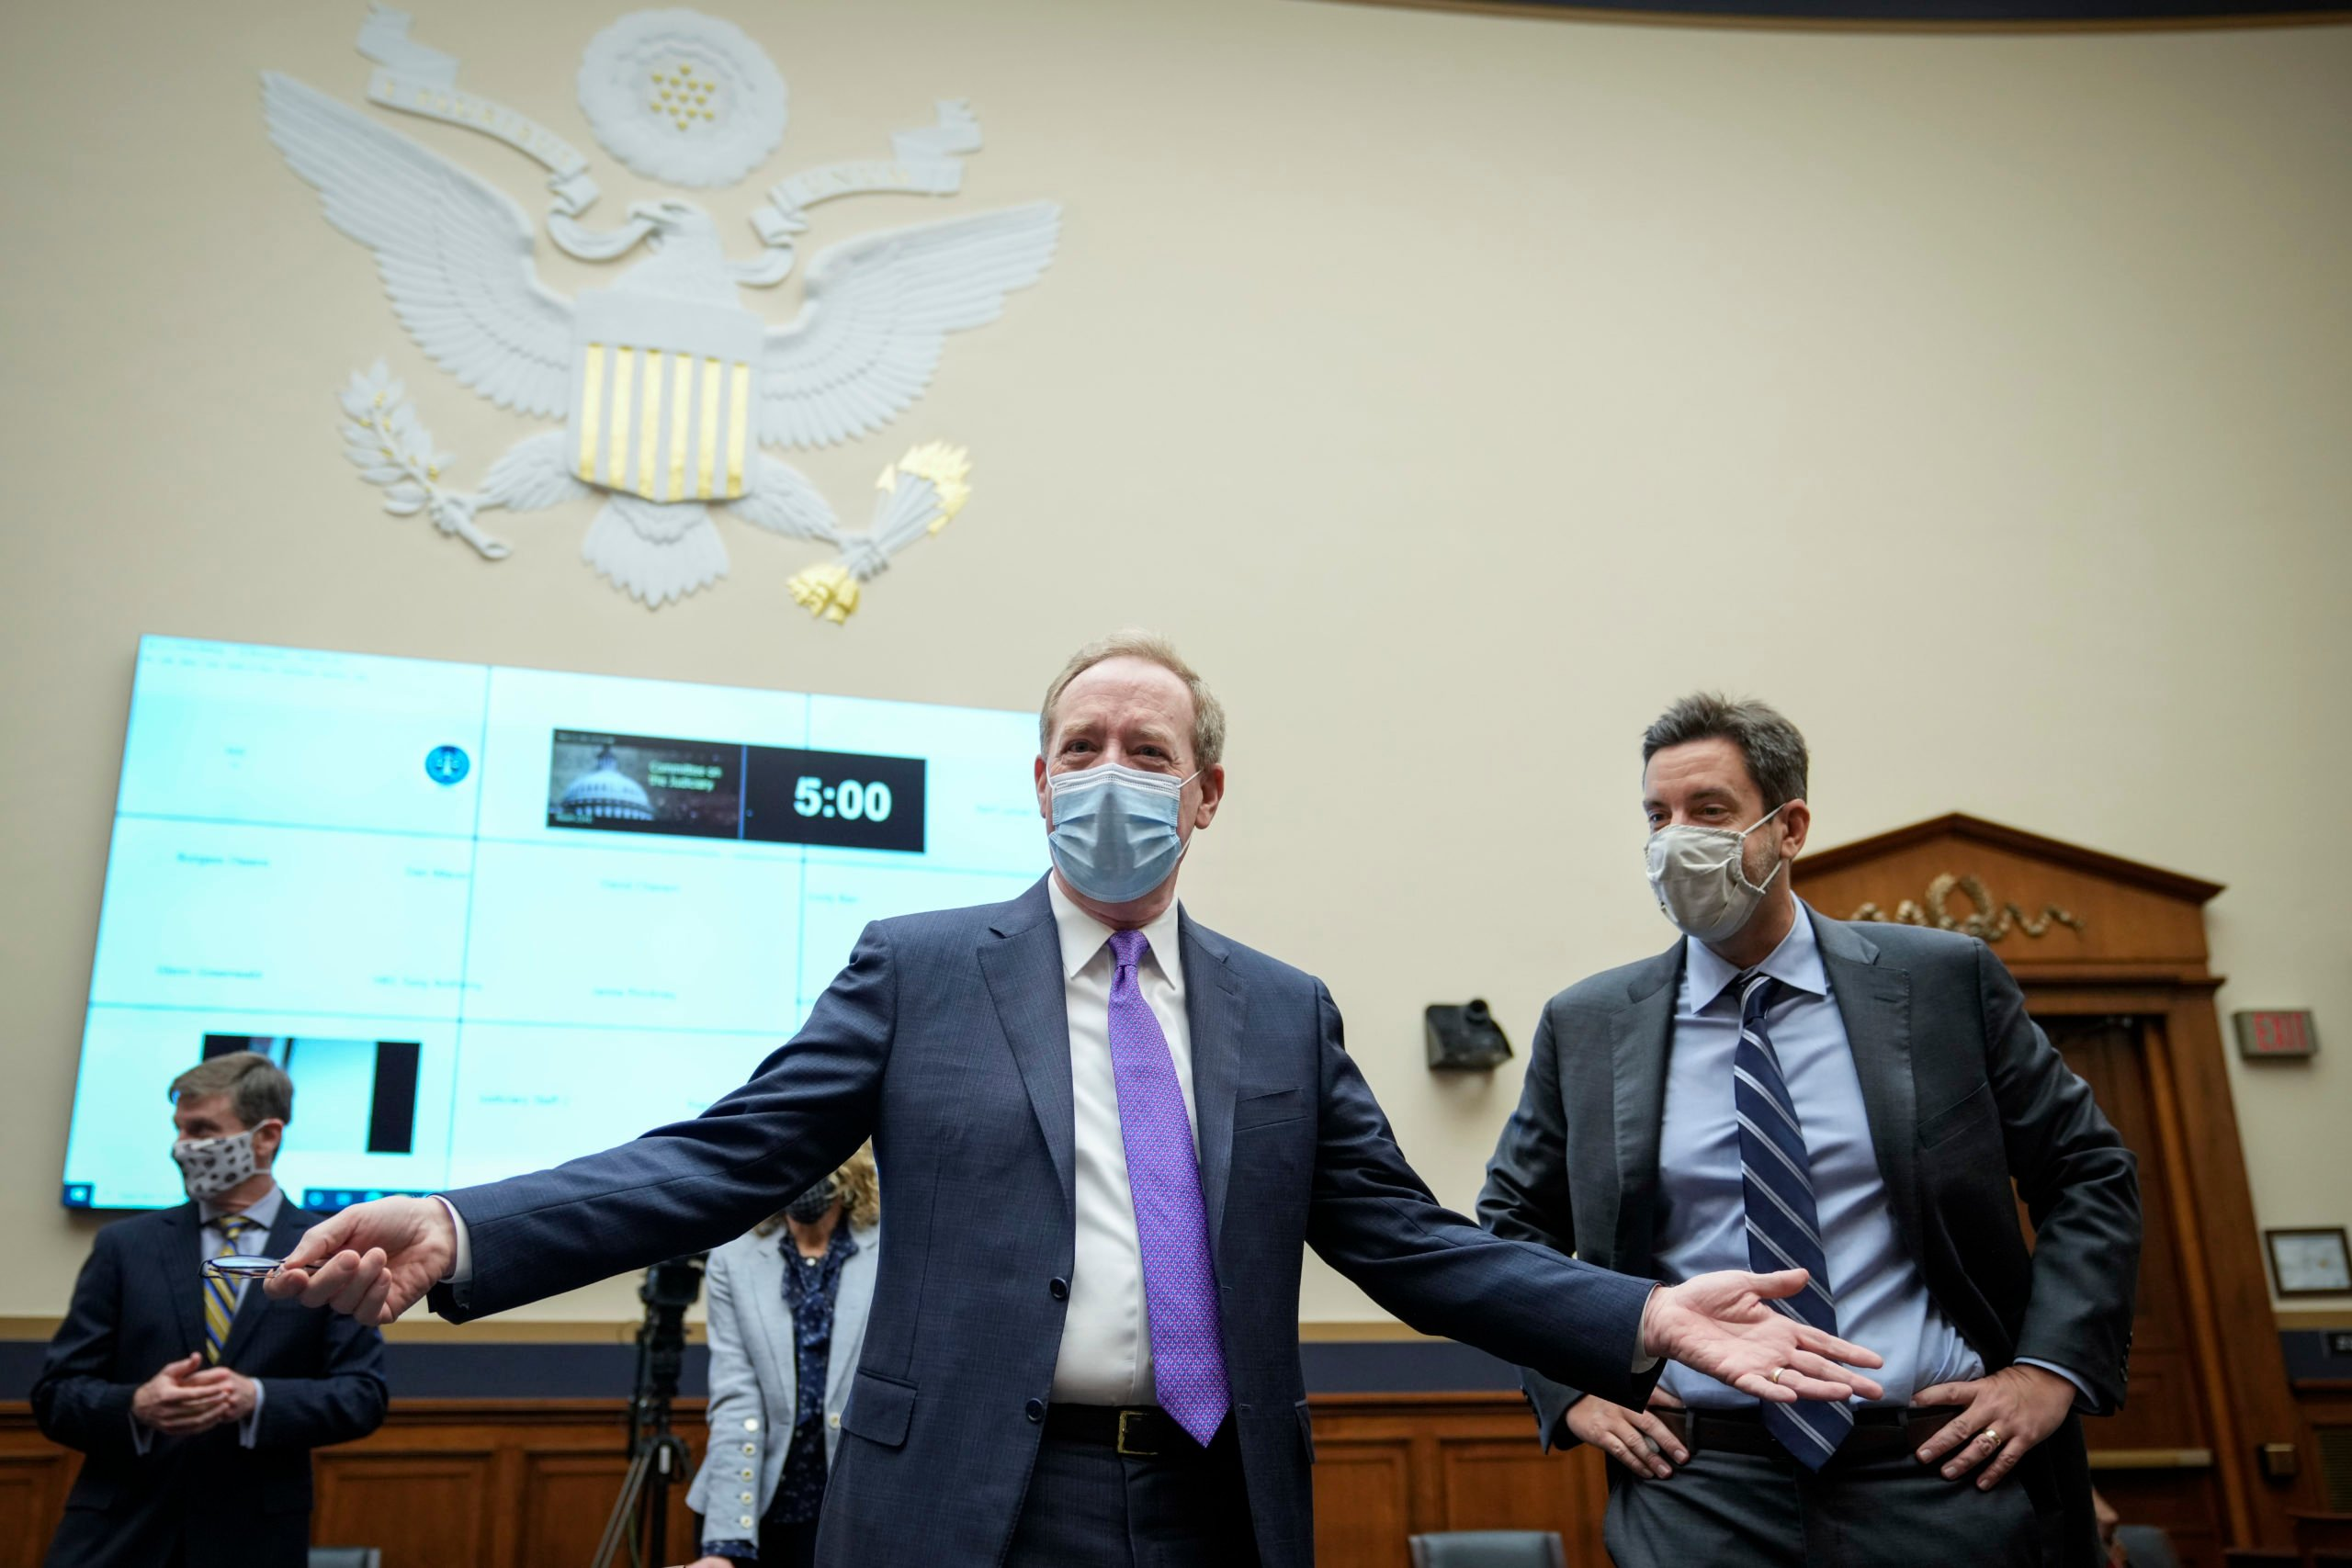 President of Microsoft Brad Smith arrives to a House Judiciary Committee hearing in March. (Drew Angerer/Getty Images)